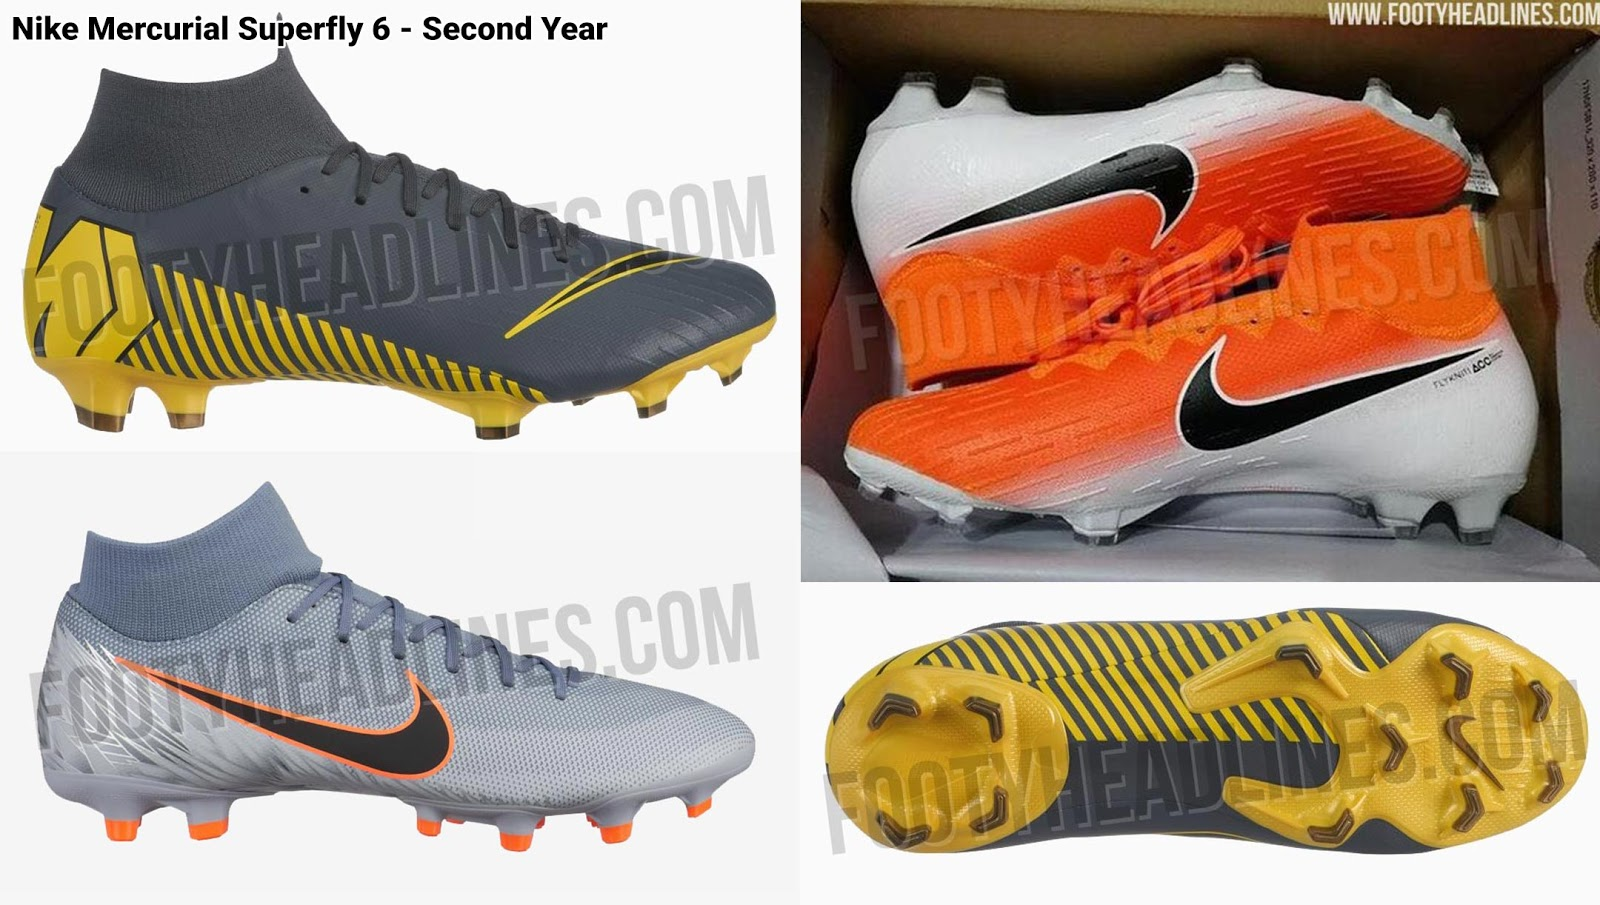 release date 1e875 47a11 Updated Nike Mercurial Superfly & Vapor 360 Visual Design ...